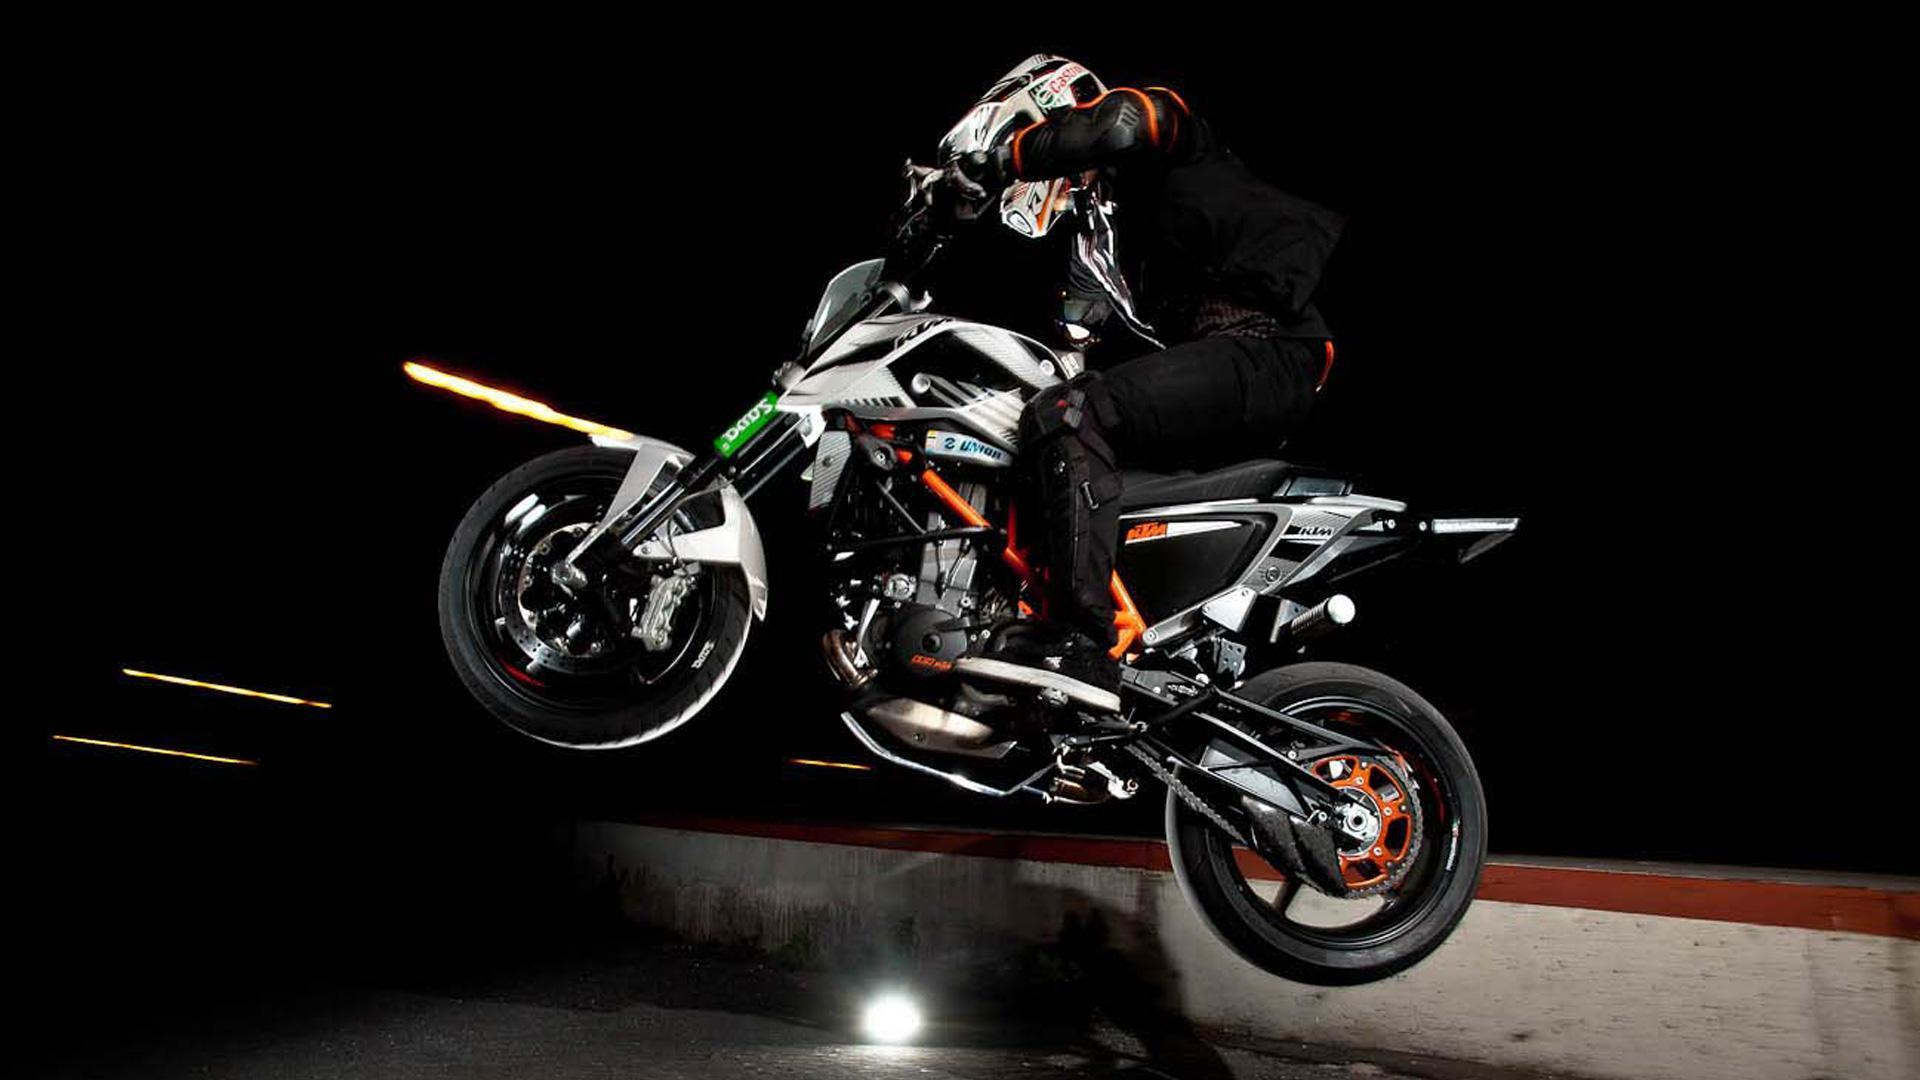 Wallpapers For > Hd Stunt Bike Wallpapers